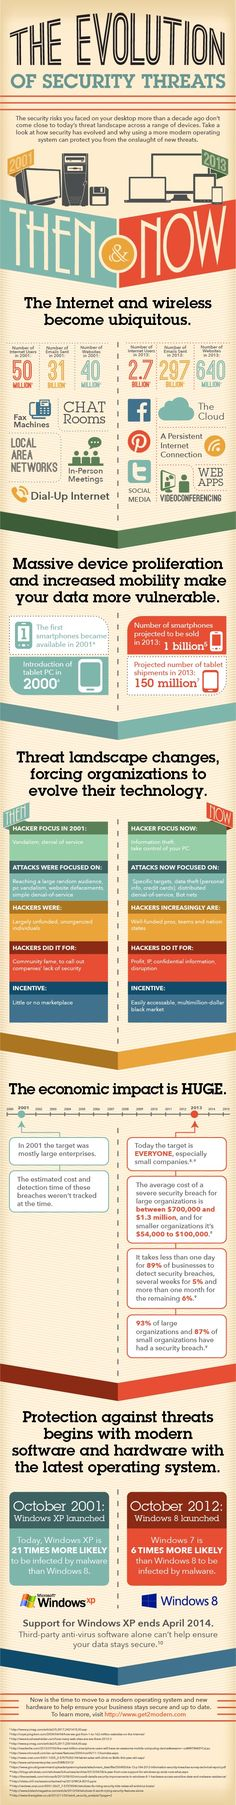 The Evolution of Security Threats #infographic #security